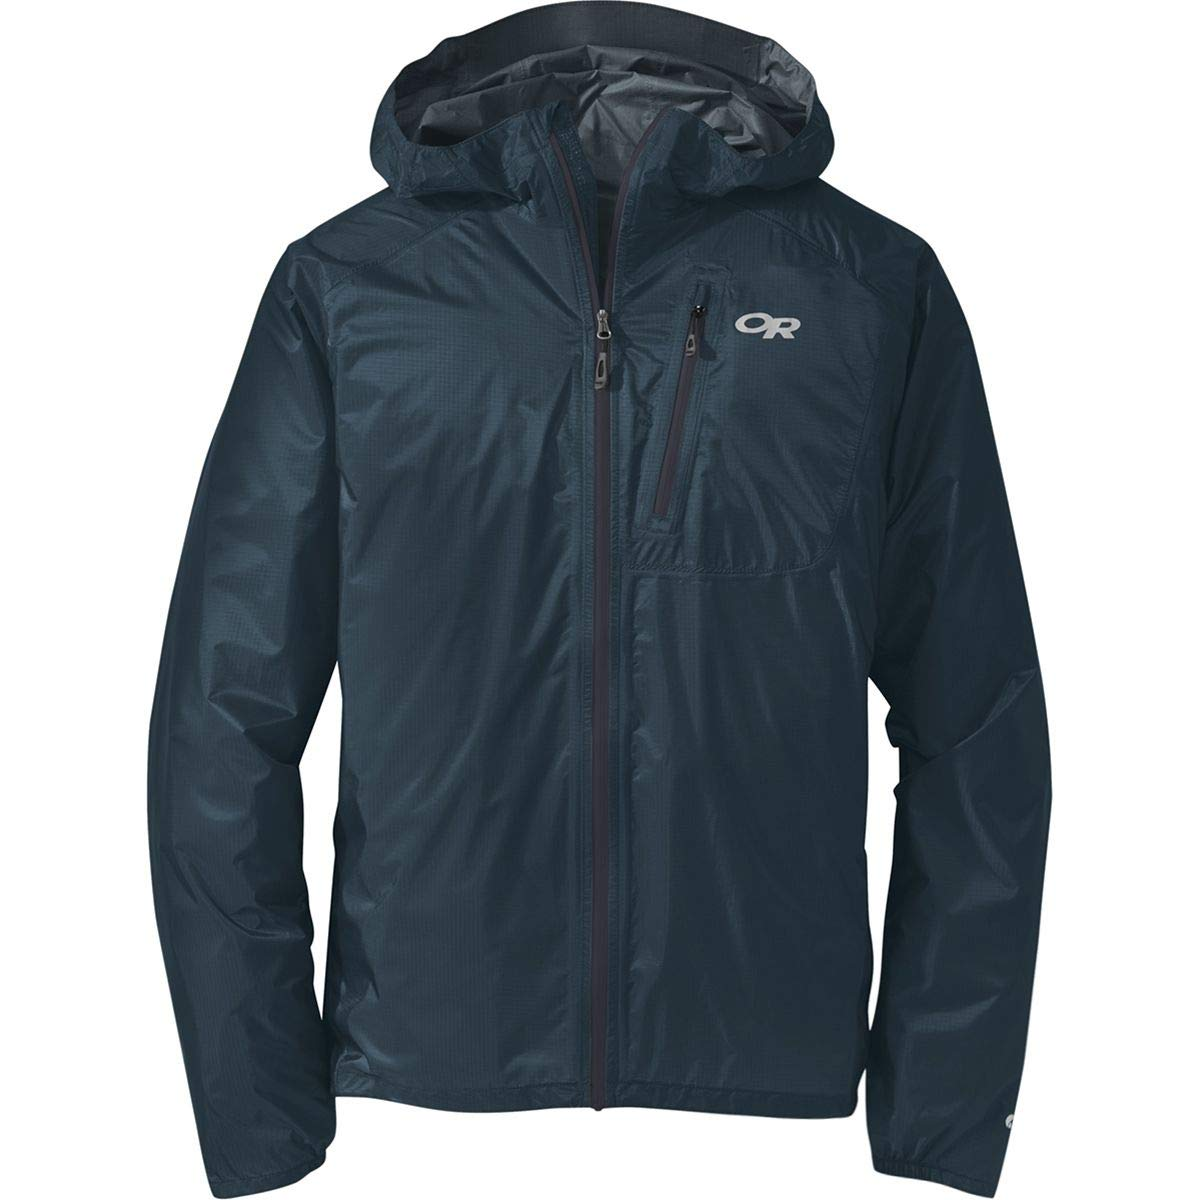 Outdoor Research Helium II Jacket - Men's Prussian Blue, S by Outdoor Research